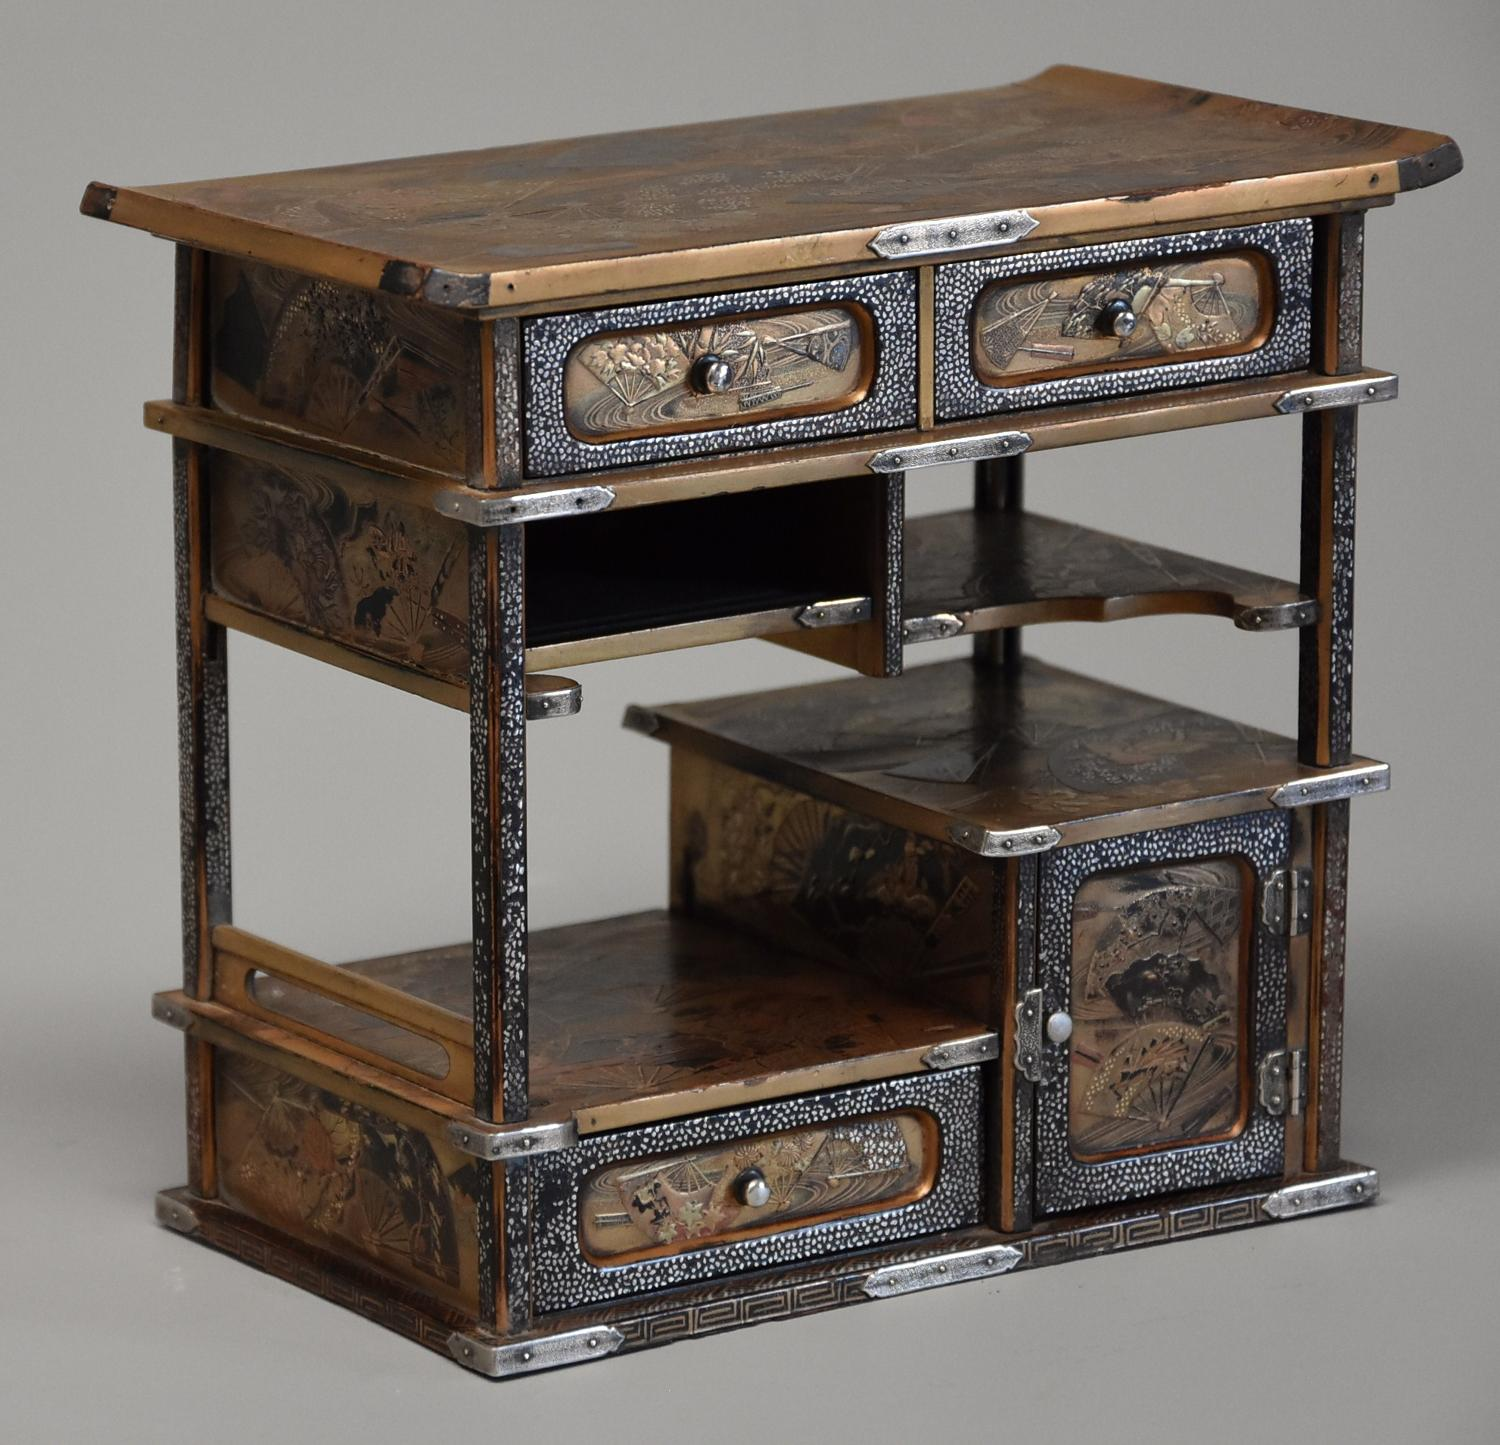 Small early 20thc lacquered Japanese shodana table cabinet